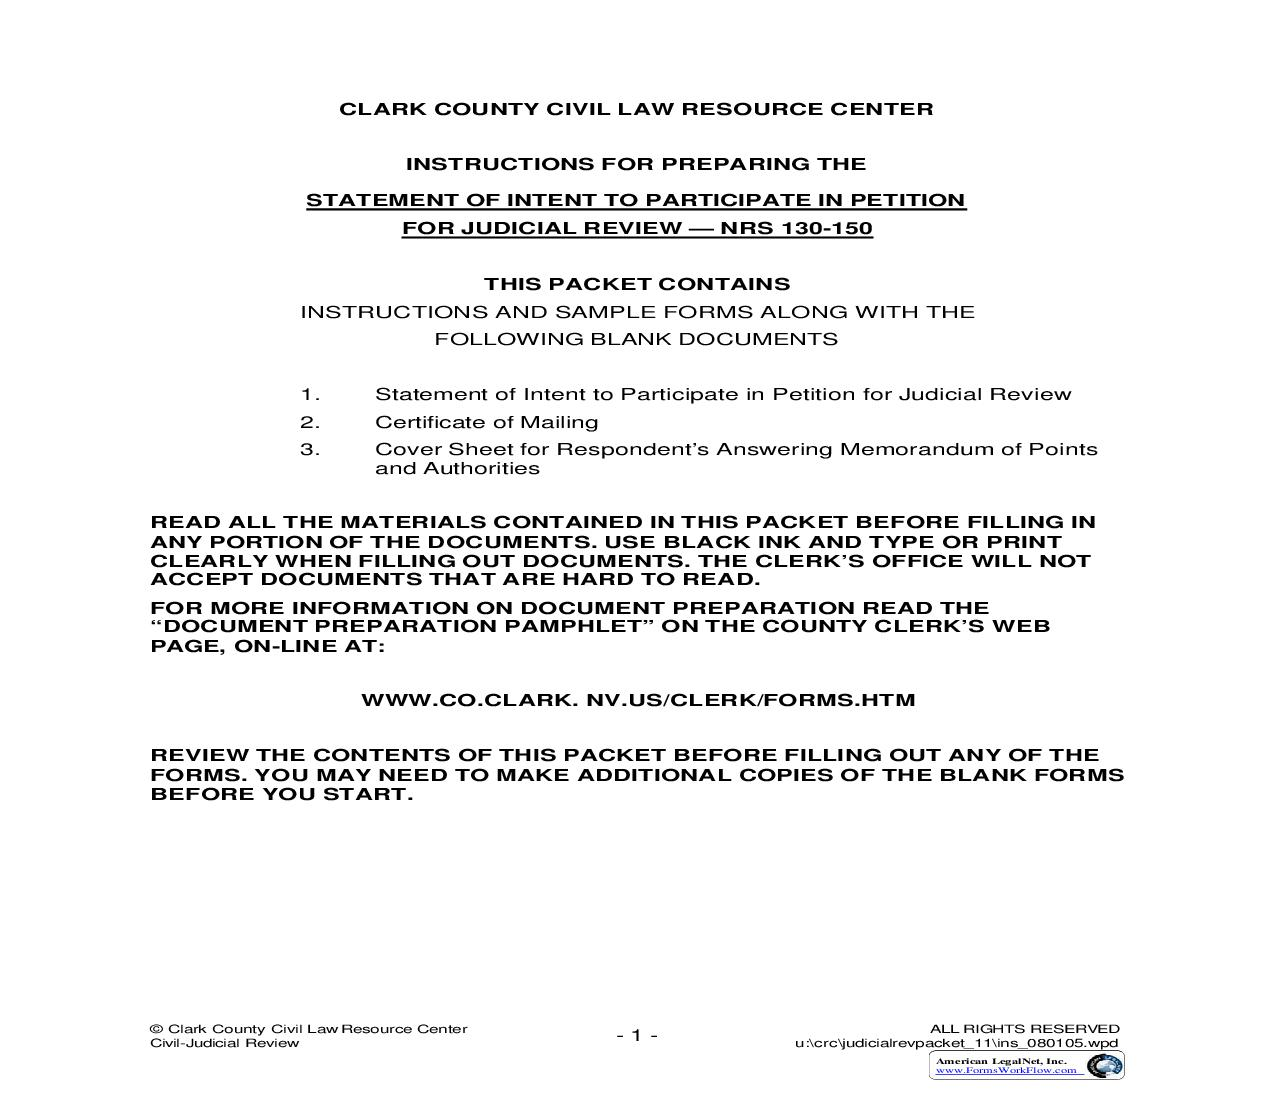 Statement Of Intent To Participate In Petition For Judicial Review (NRS 130-150) With Instructions | Pdf Fpdf Doc Docx | Nevada